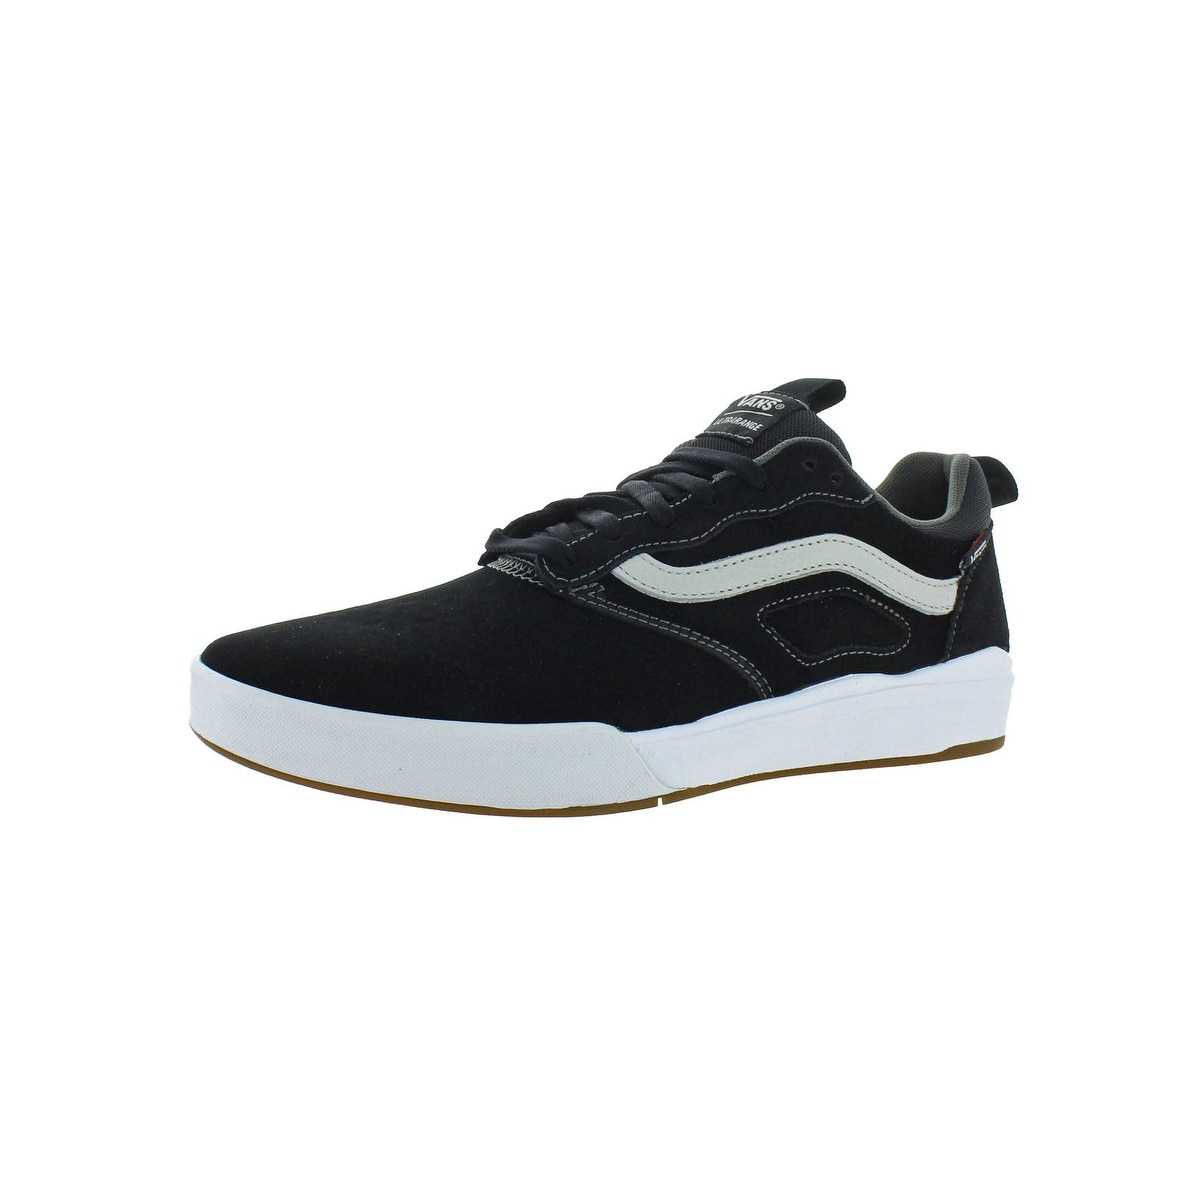 790adb53fc Vans Men s Shoes